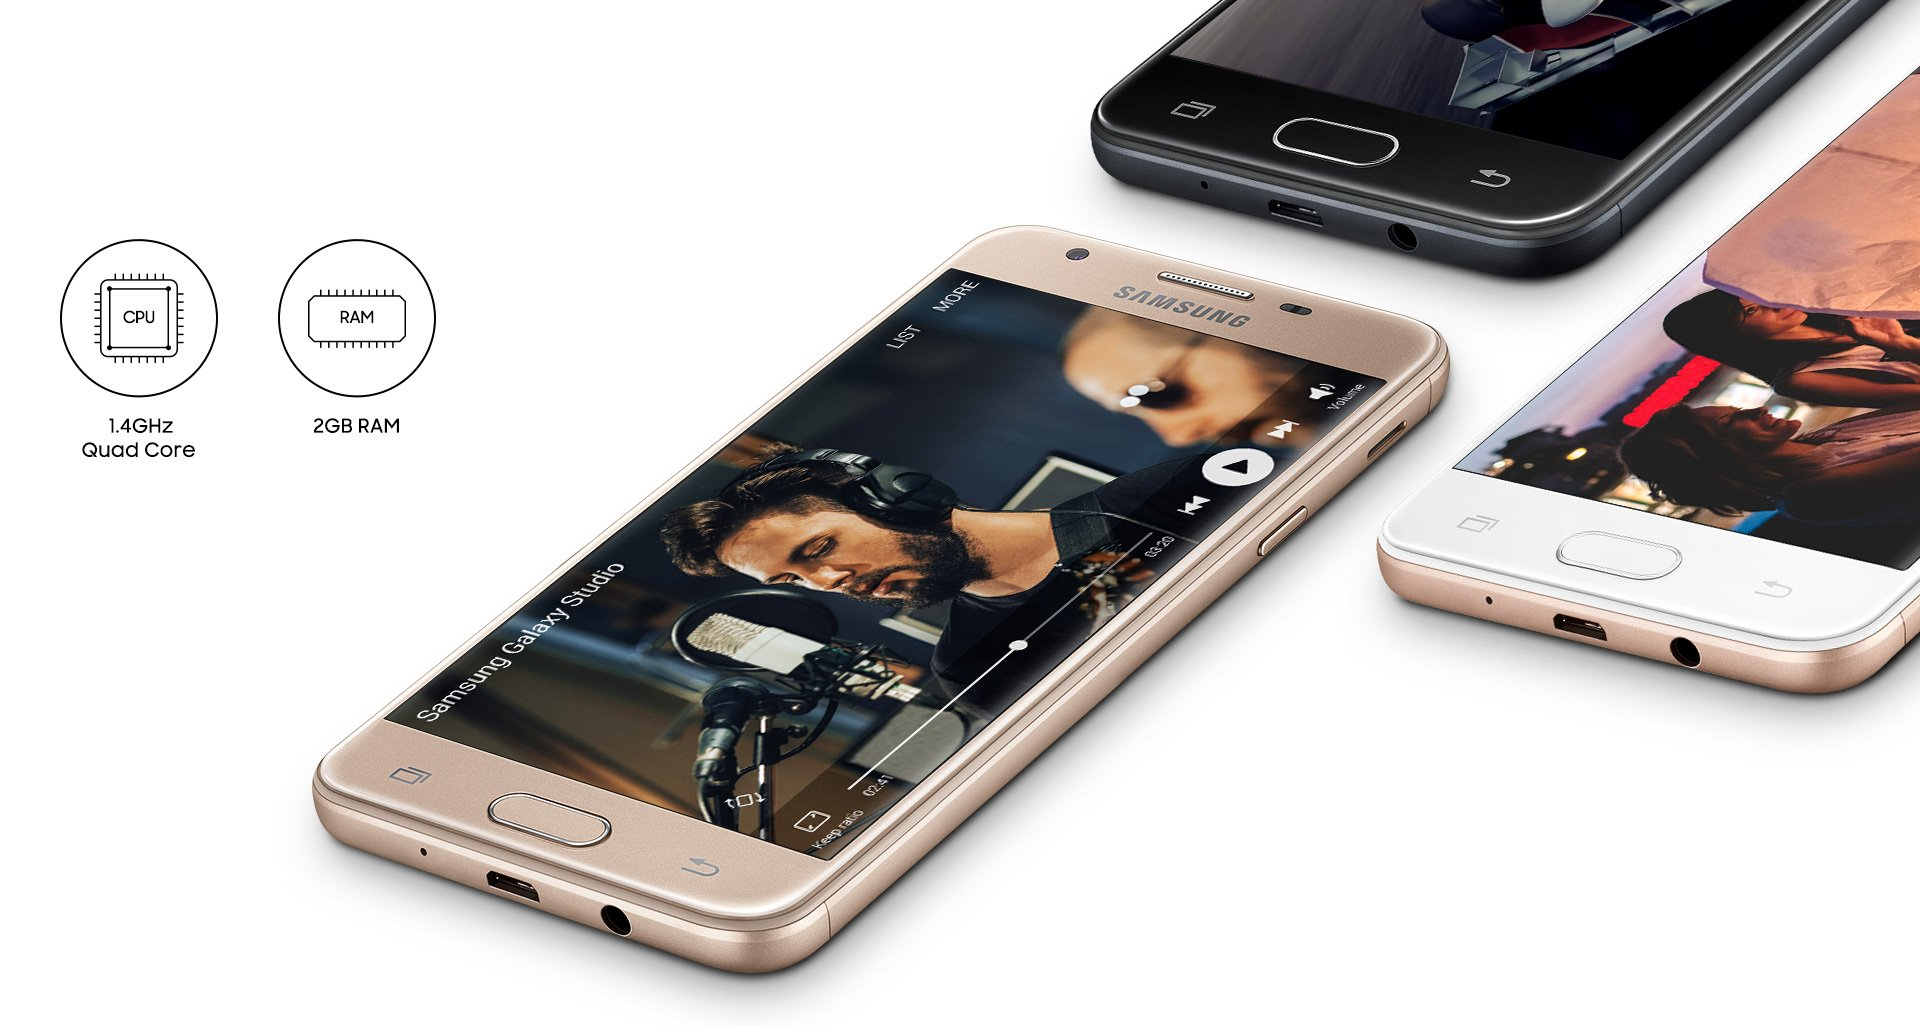 Samsung Galaxy J5 Prime specs, review, release date - PhonesData